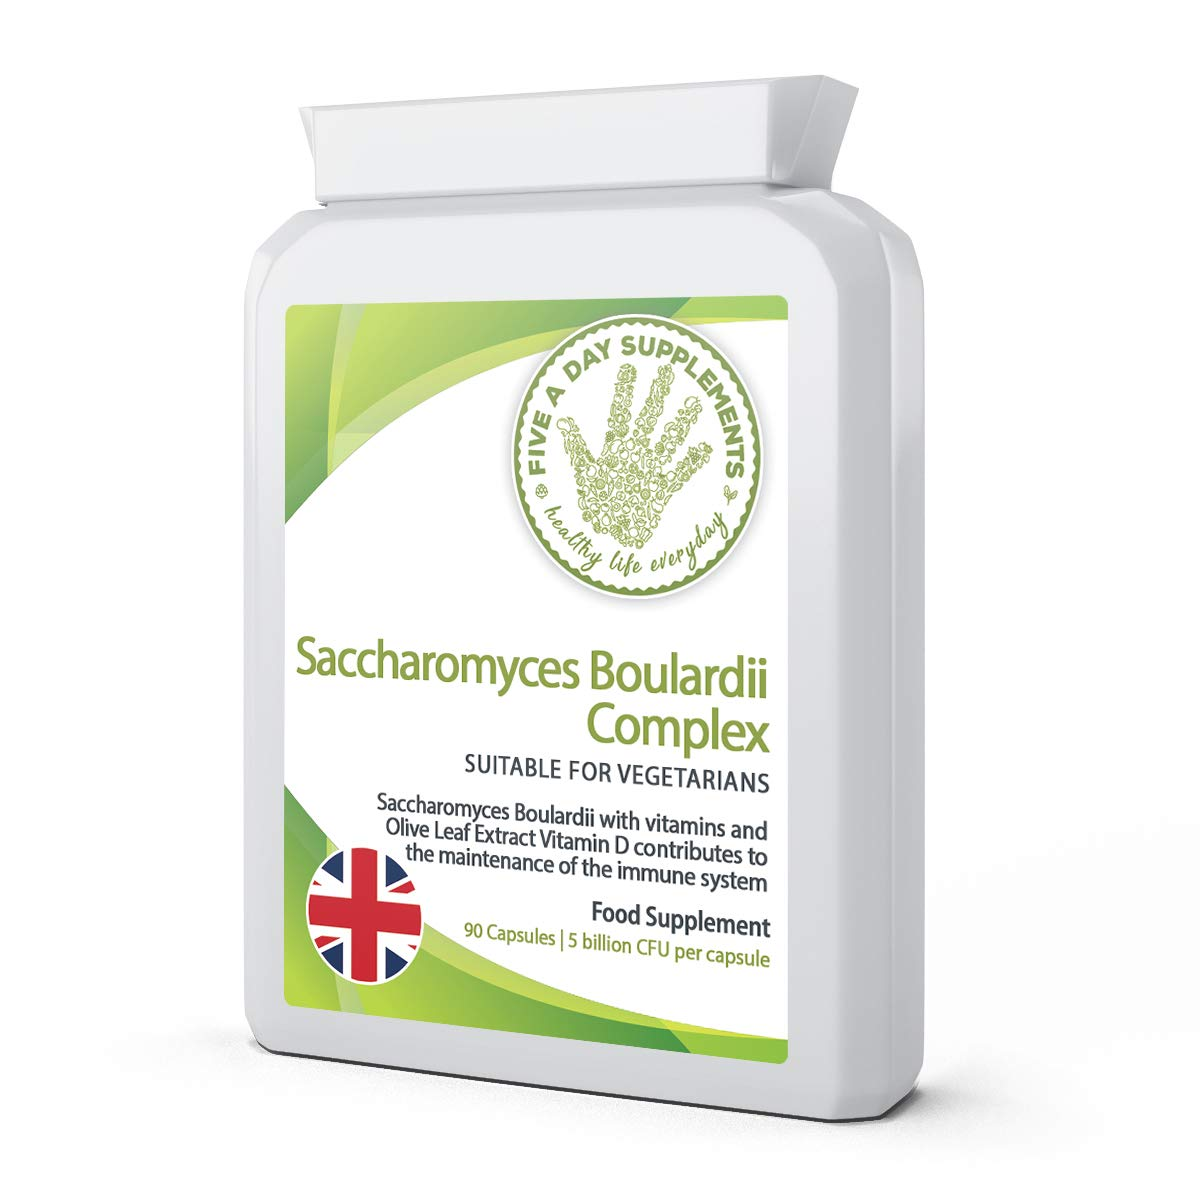 FIVE A DAY SUPPLEMENTS Saccharomyces Boulardii Complex 5 Billion CFU per Capsule - 90 Capsules - Probiotic - Added Olive Leaf Extract, Vitamin D3 and Biotin - Suitable for Vegetarian